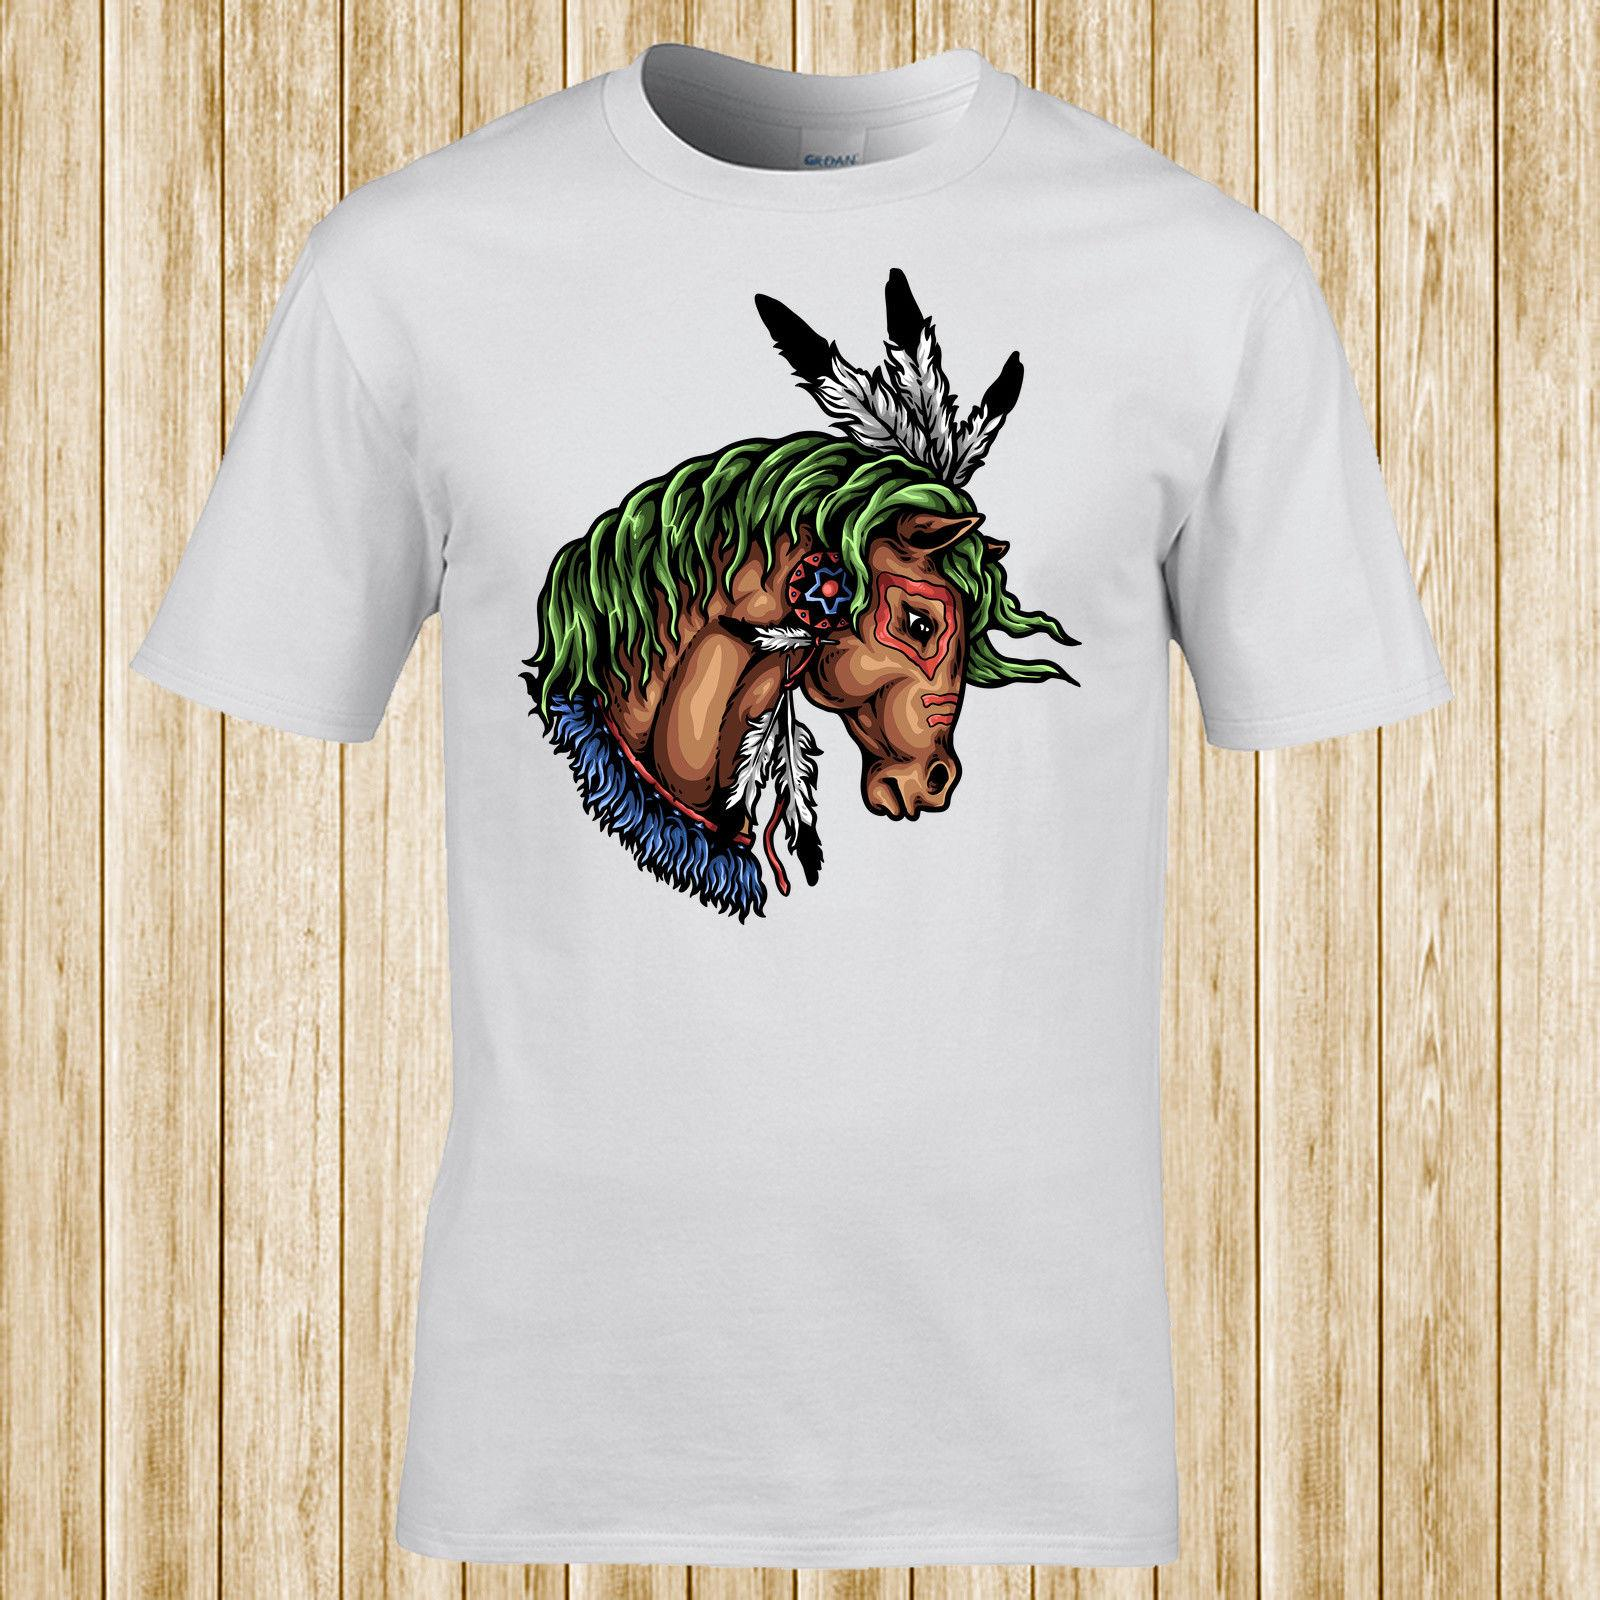 Native Wildlife t-shirt hoodie hip hop t-shirt